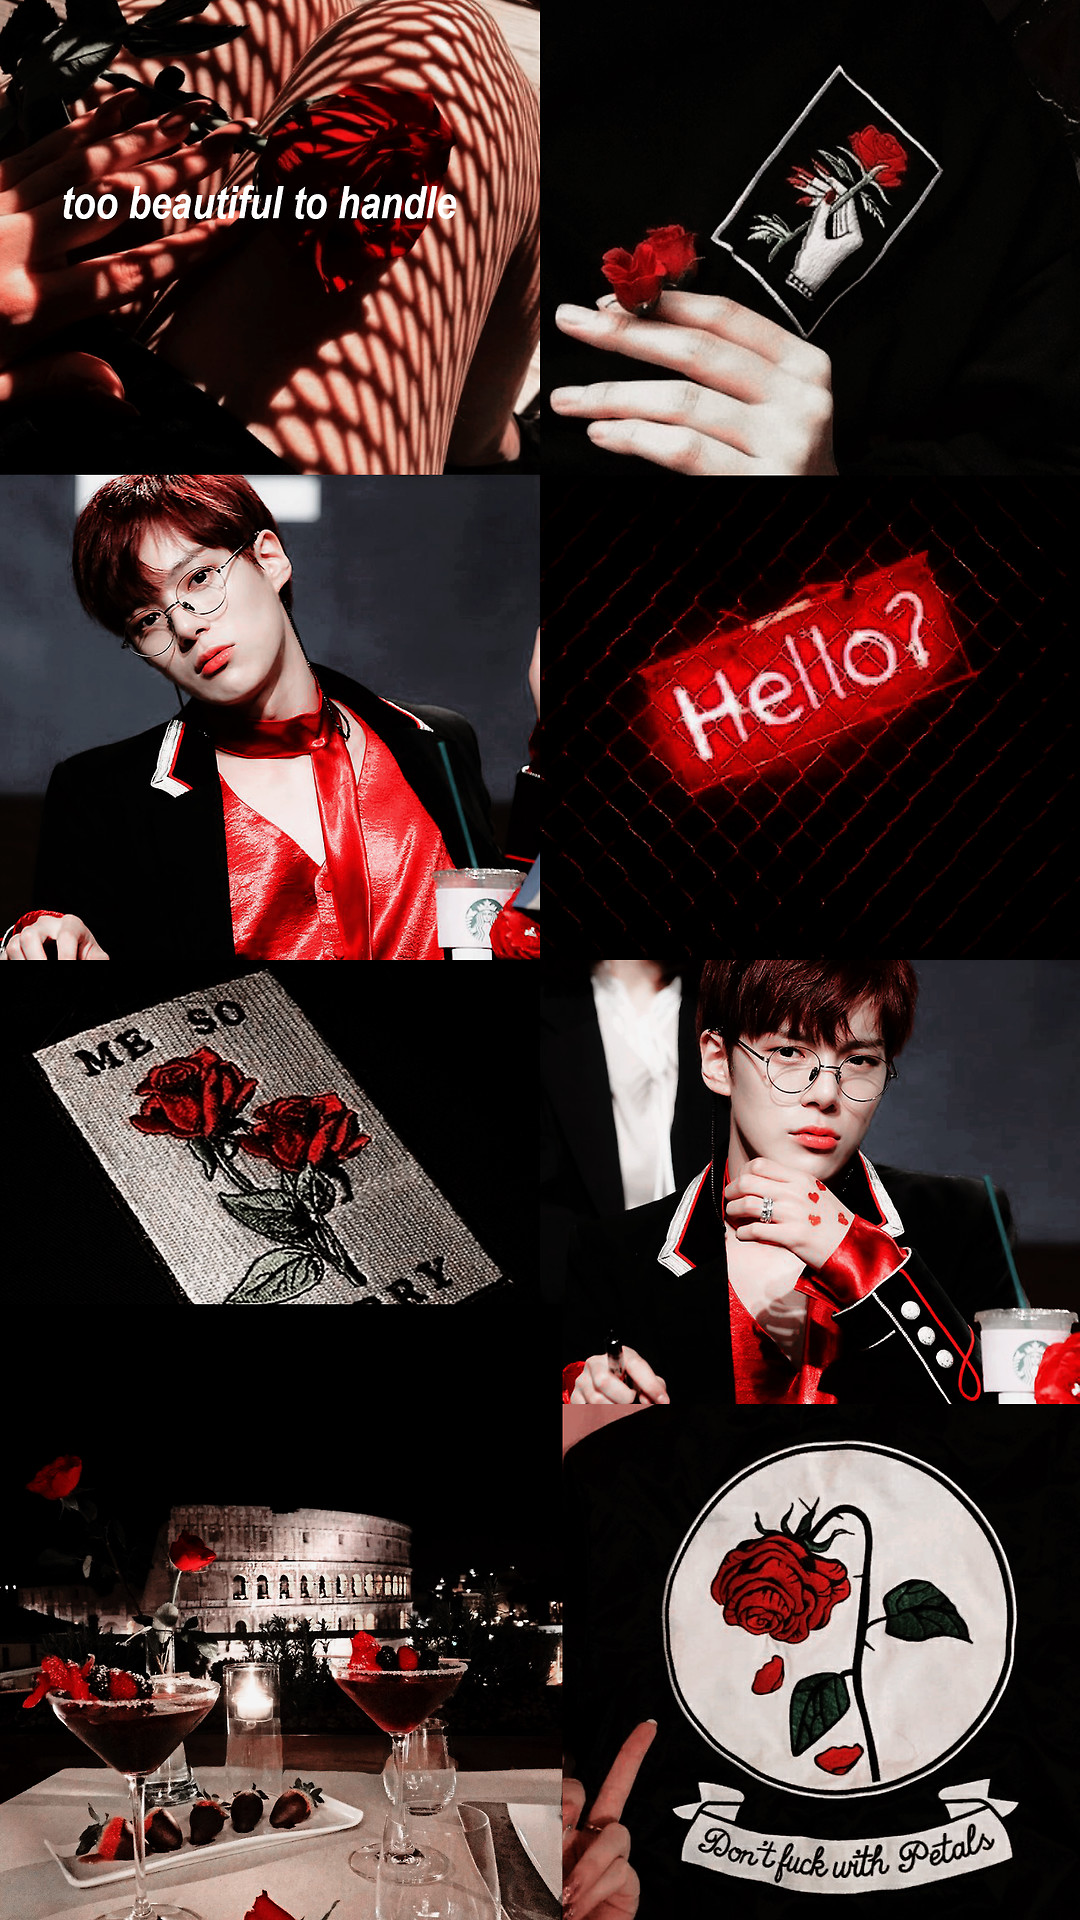 1080x1920 minhyuk monsta x monsta x aesthetic minhyuk aesthetic lee minhyuk kpop lock  kpop locks monsta x